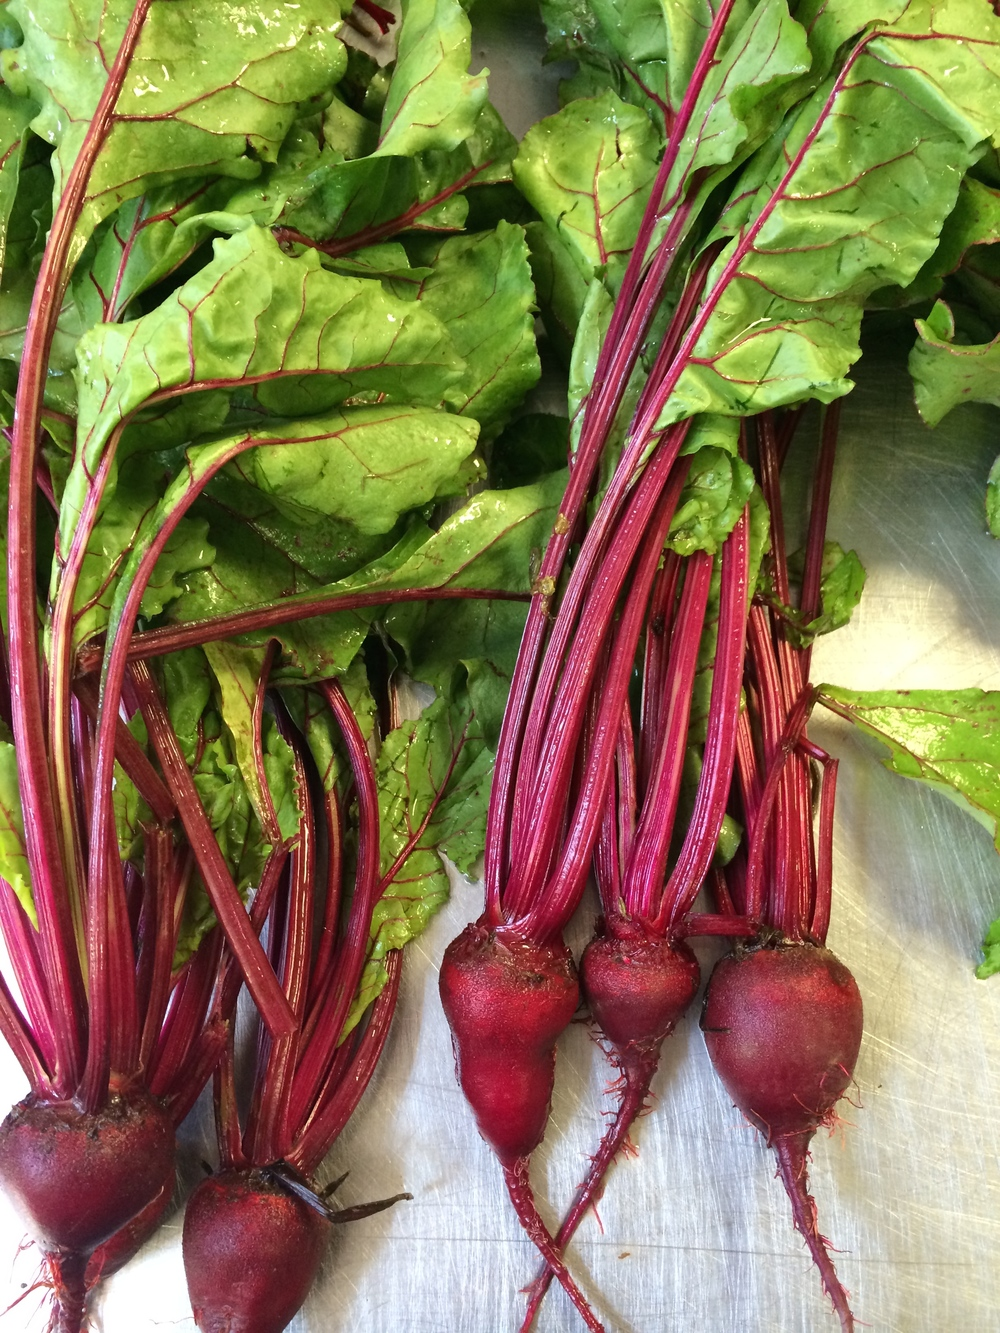 Our gorgeous & vibrant beets.